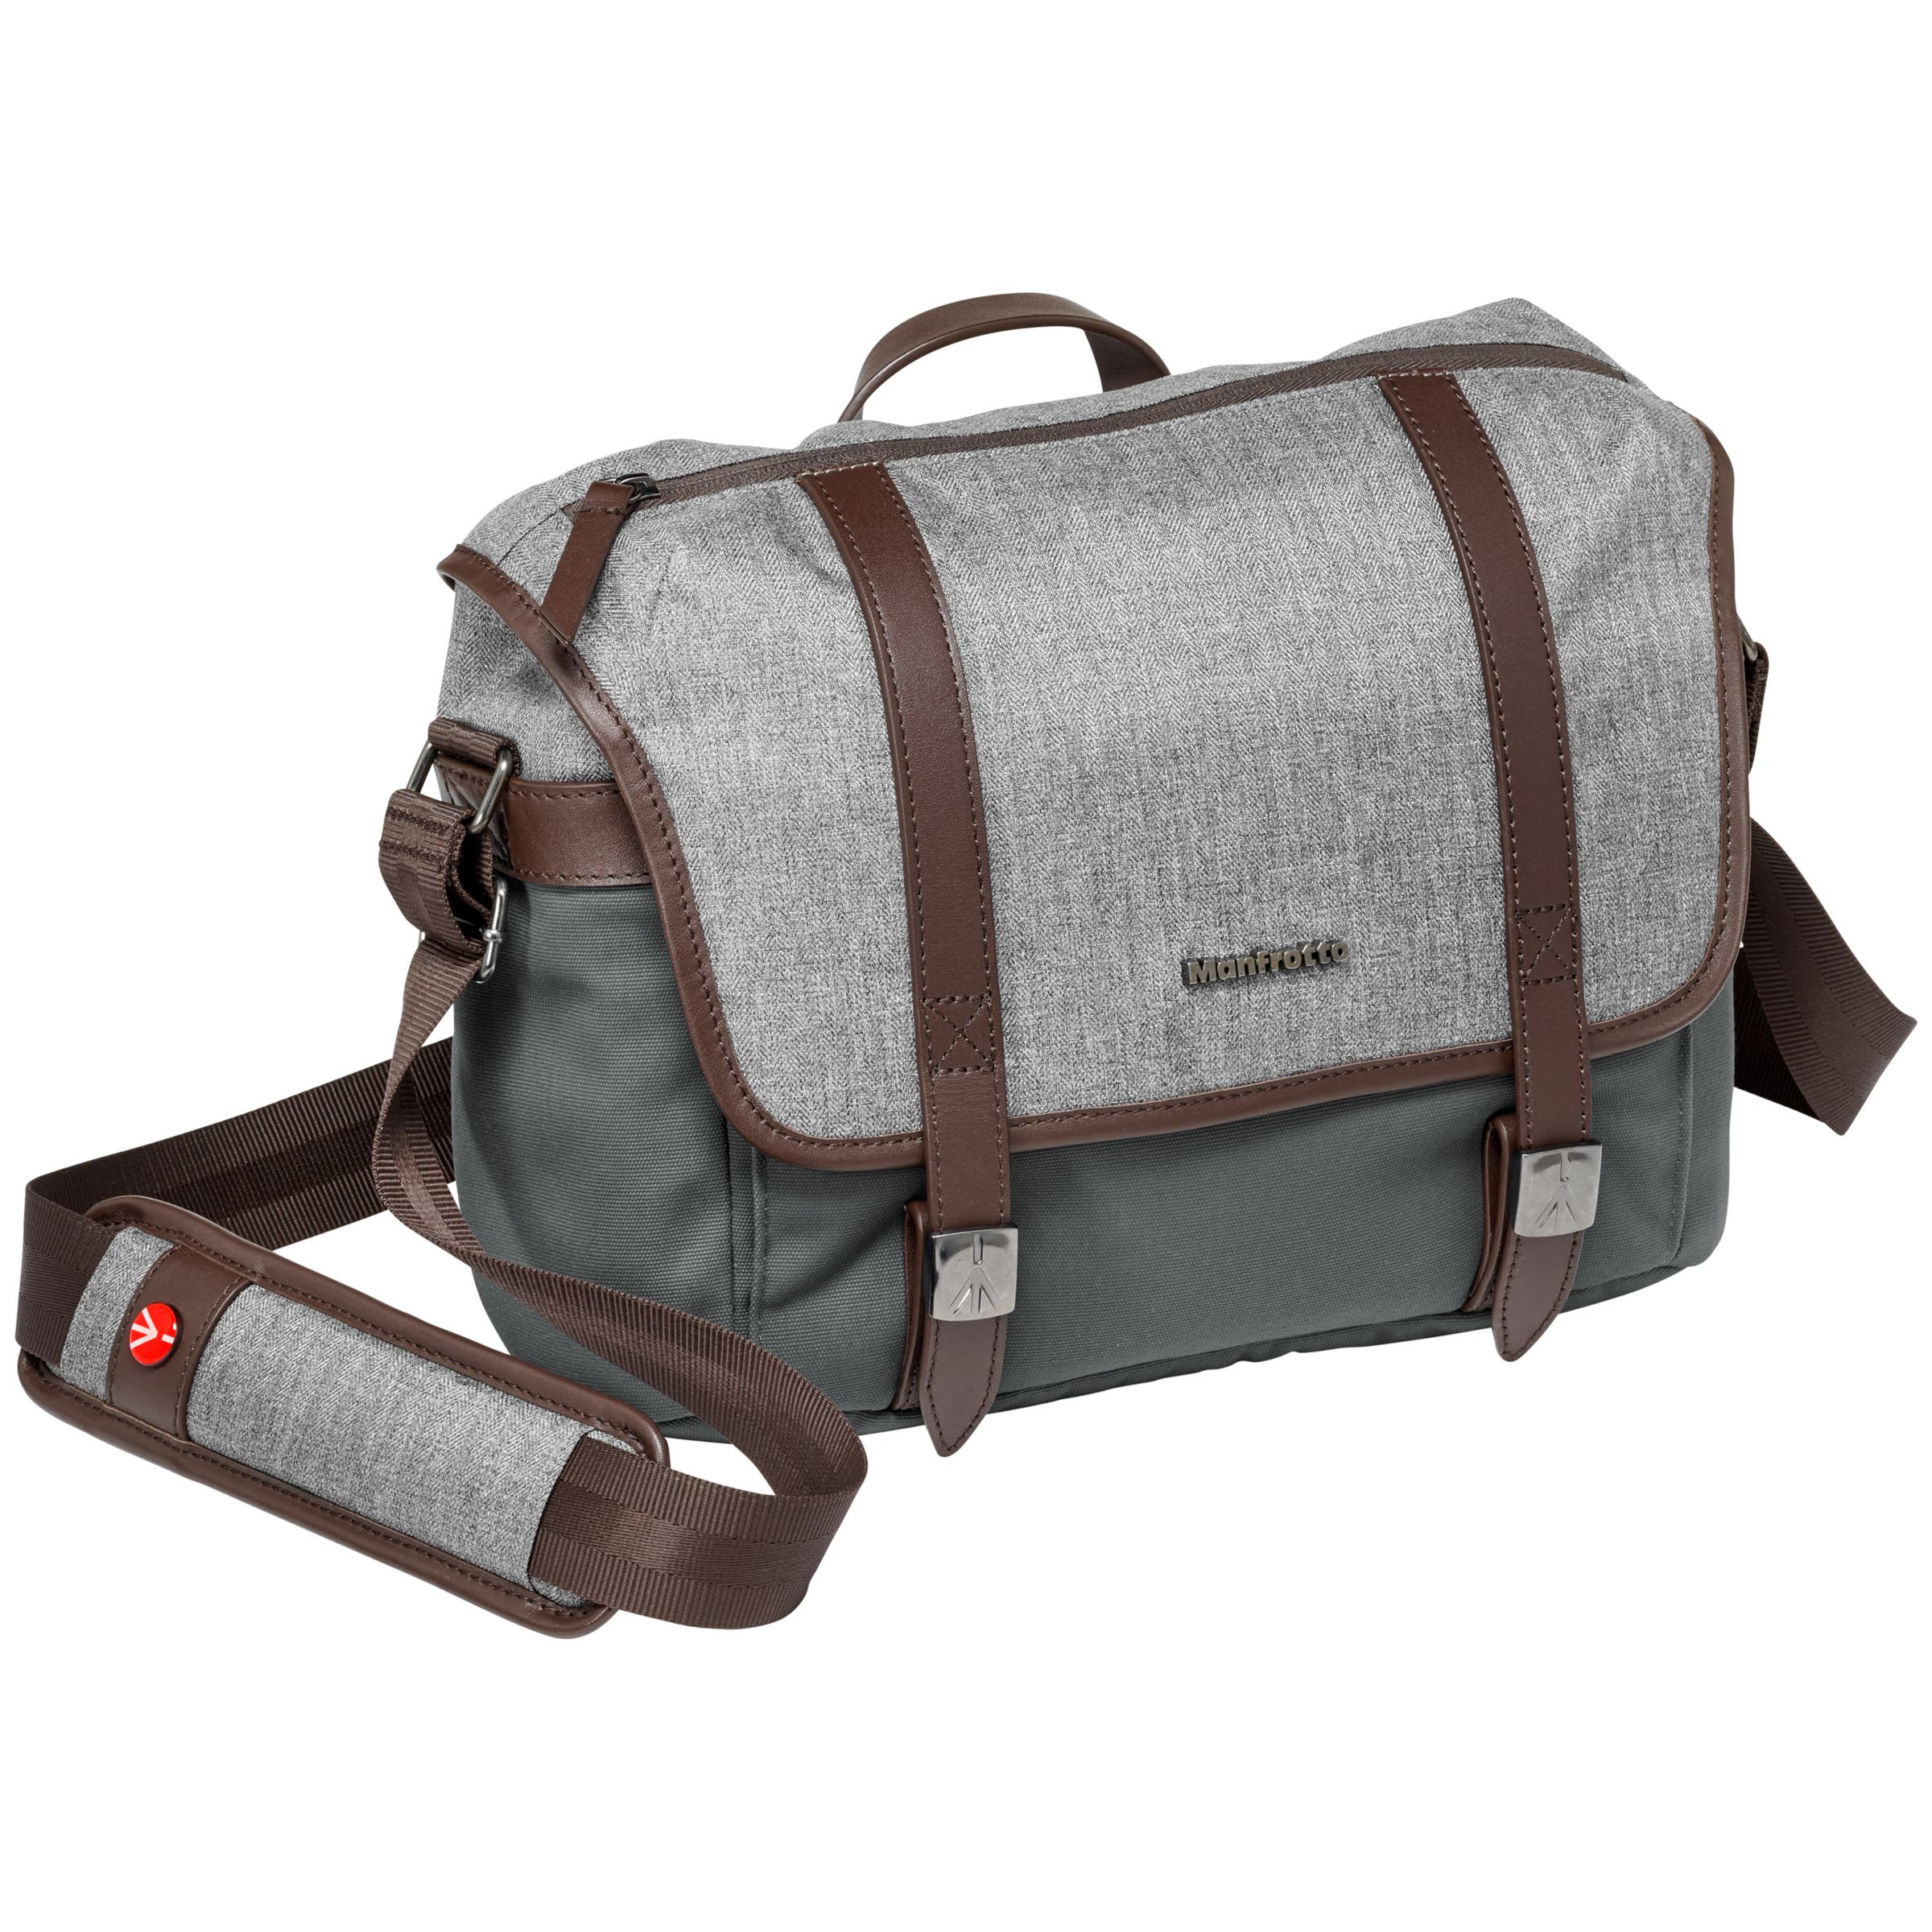 Manfrotto Manfrotto Lifestyle Windsor S Camera Messenger Bag for CSCs